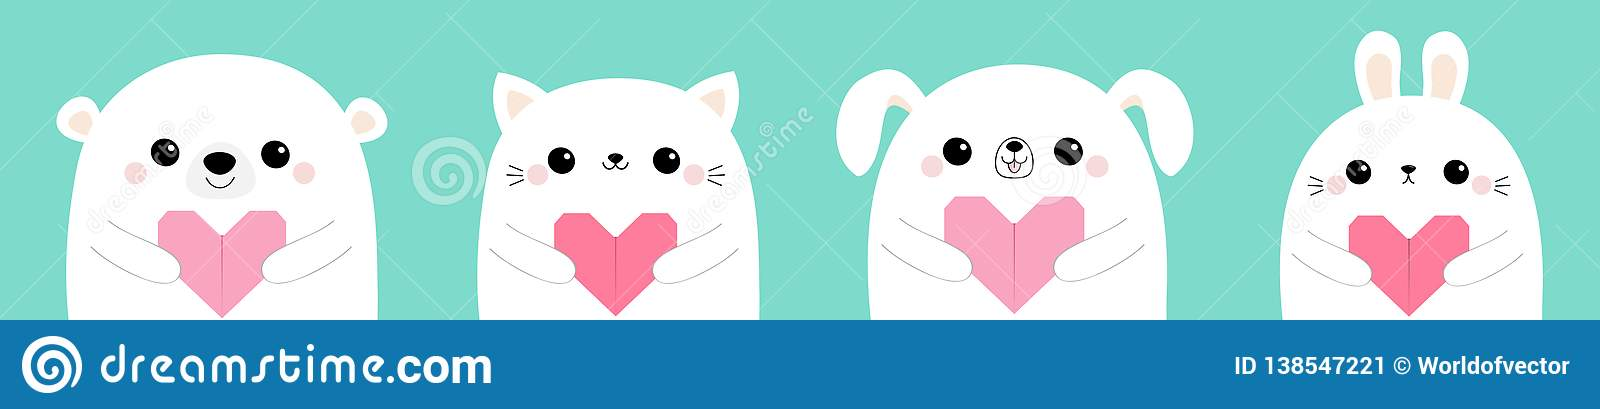 Happy Valentines Day. White bear rabbit hare dog puppy cat kitten head face set holding pink origami paper heart. Cute cartoon